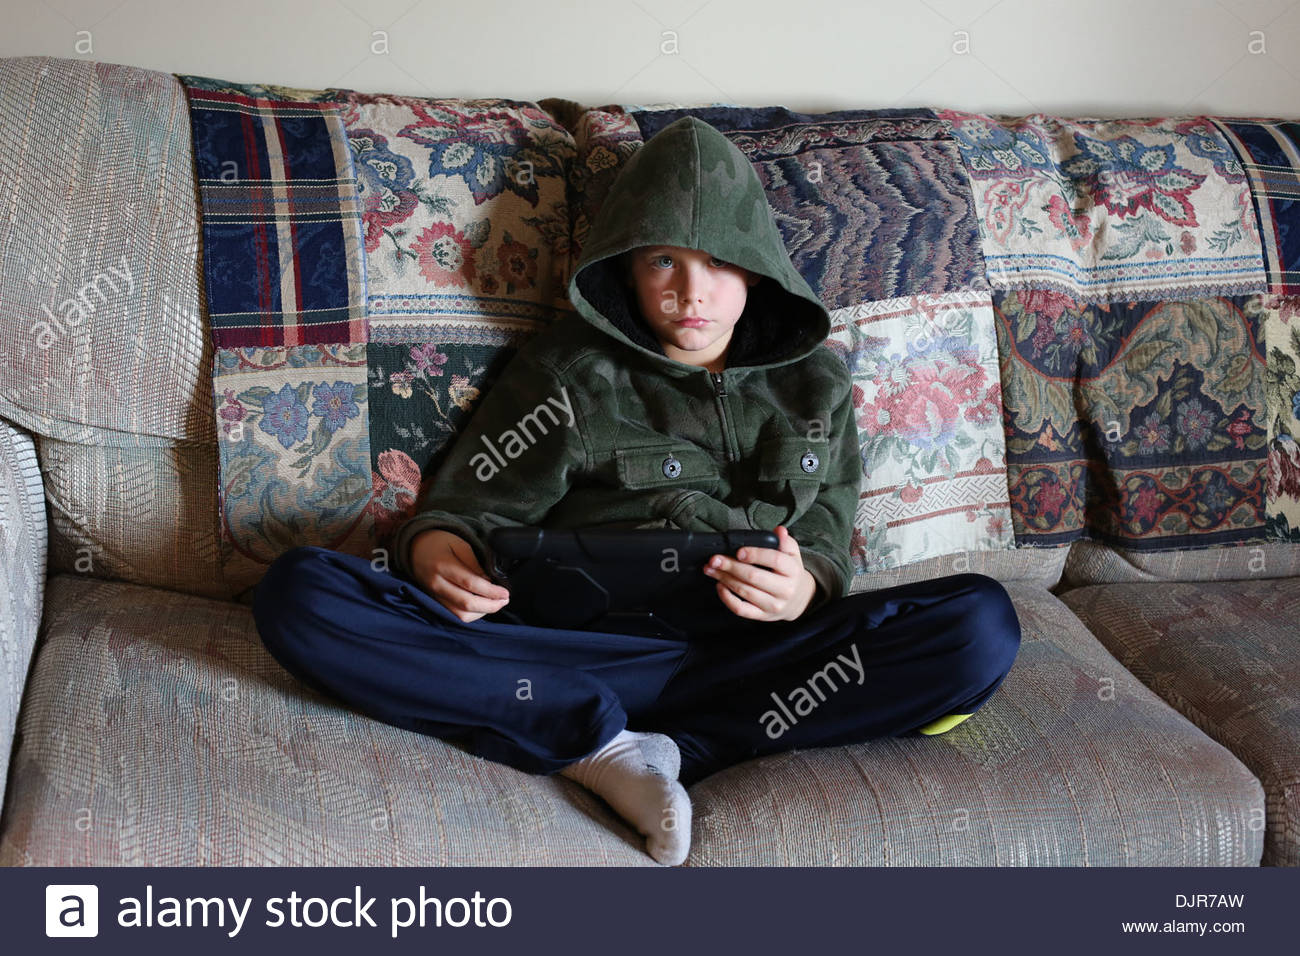 A young, sullen boy sitting on a sofa holding a tablet. - Stock Image